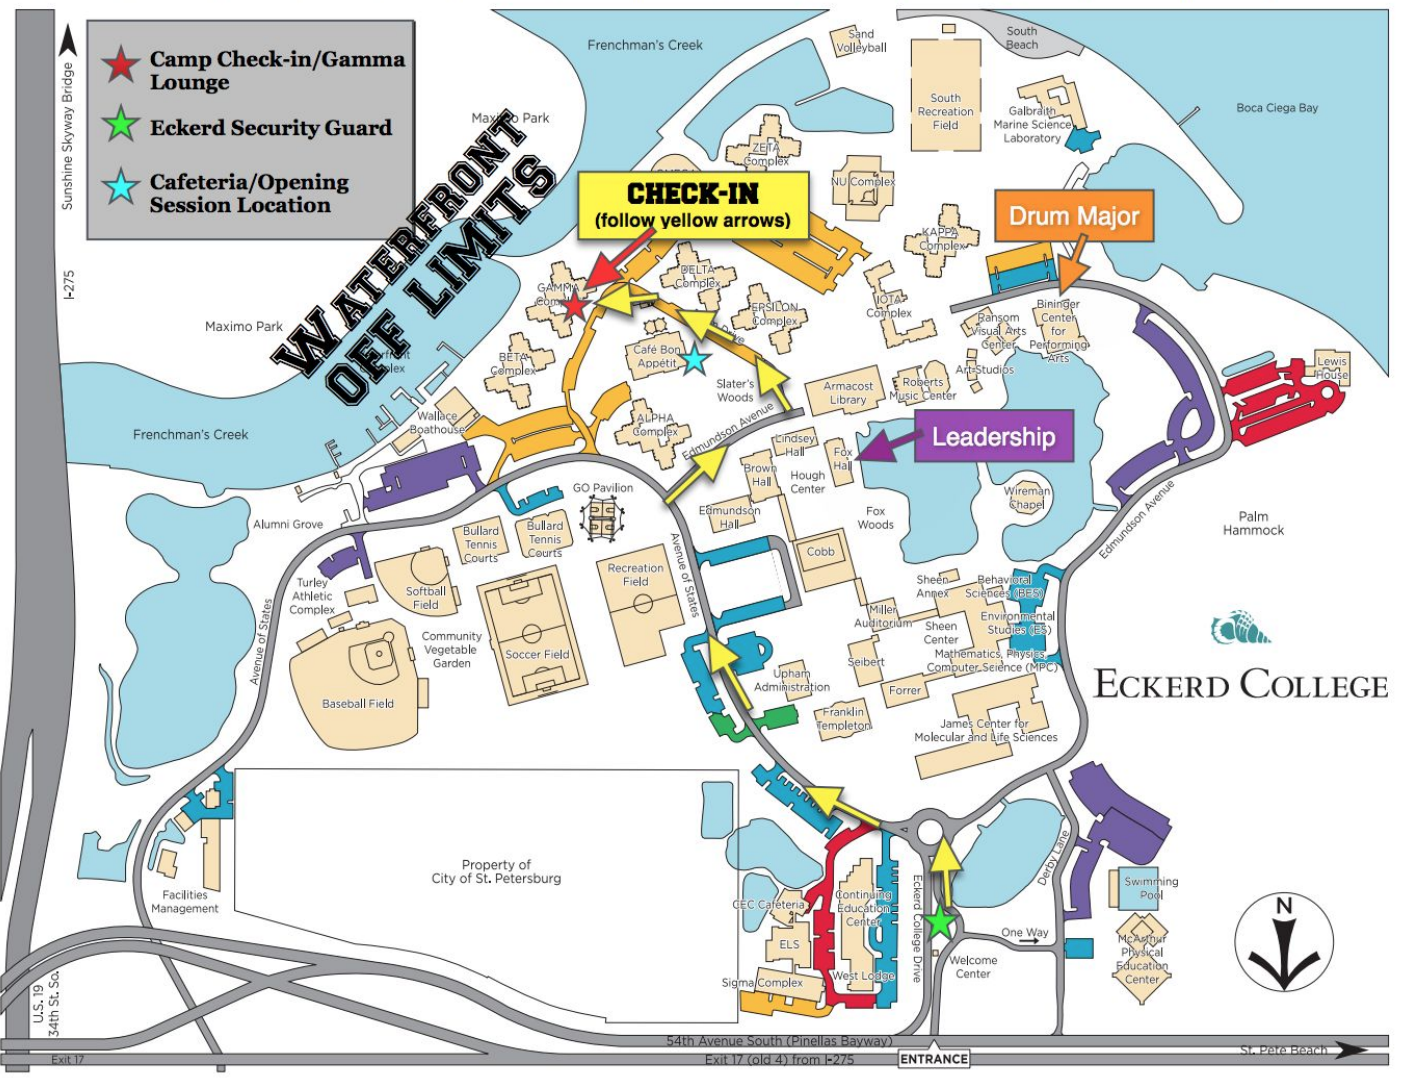 eckerd college campus map Reminders Penny S Camp eckerd college campus map